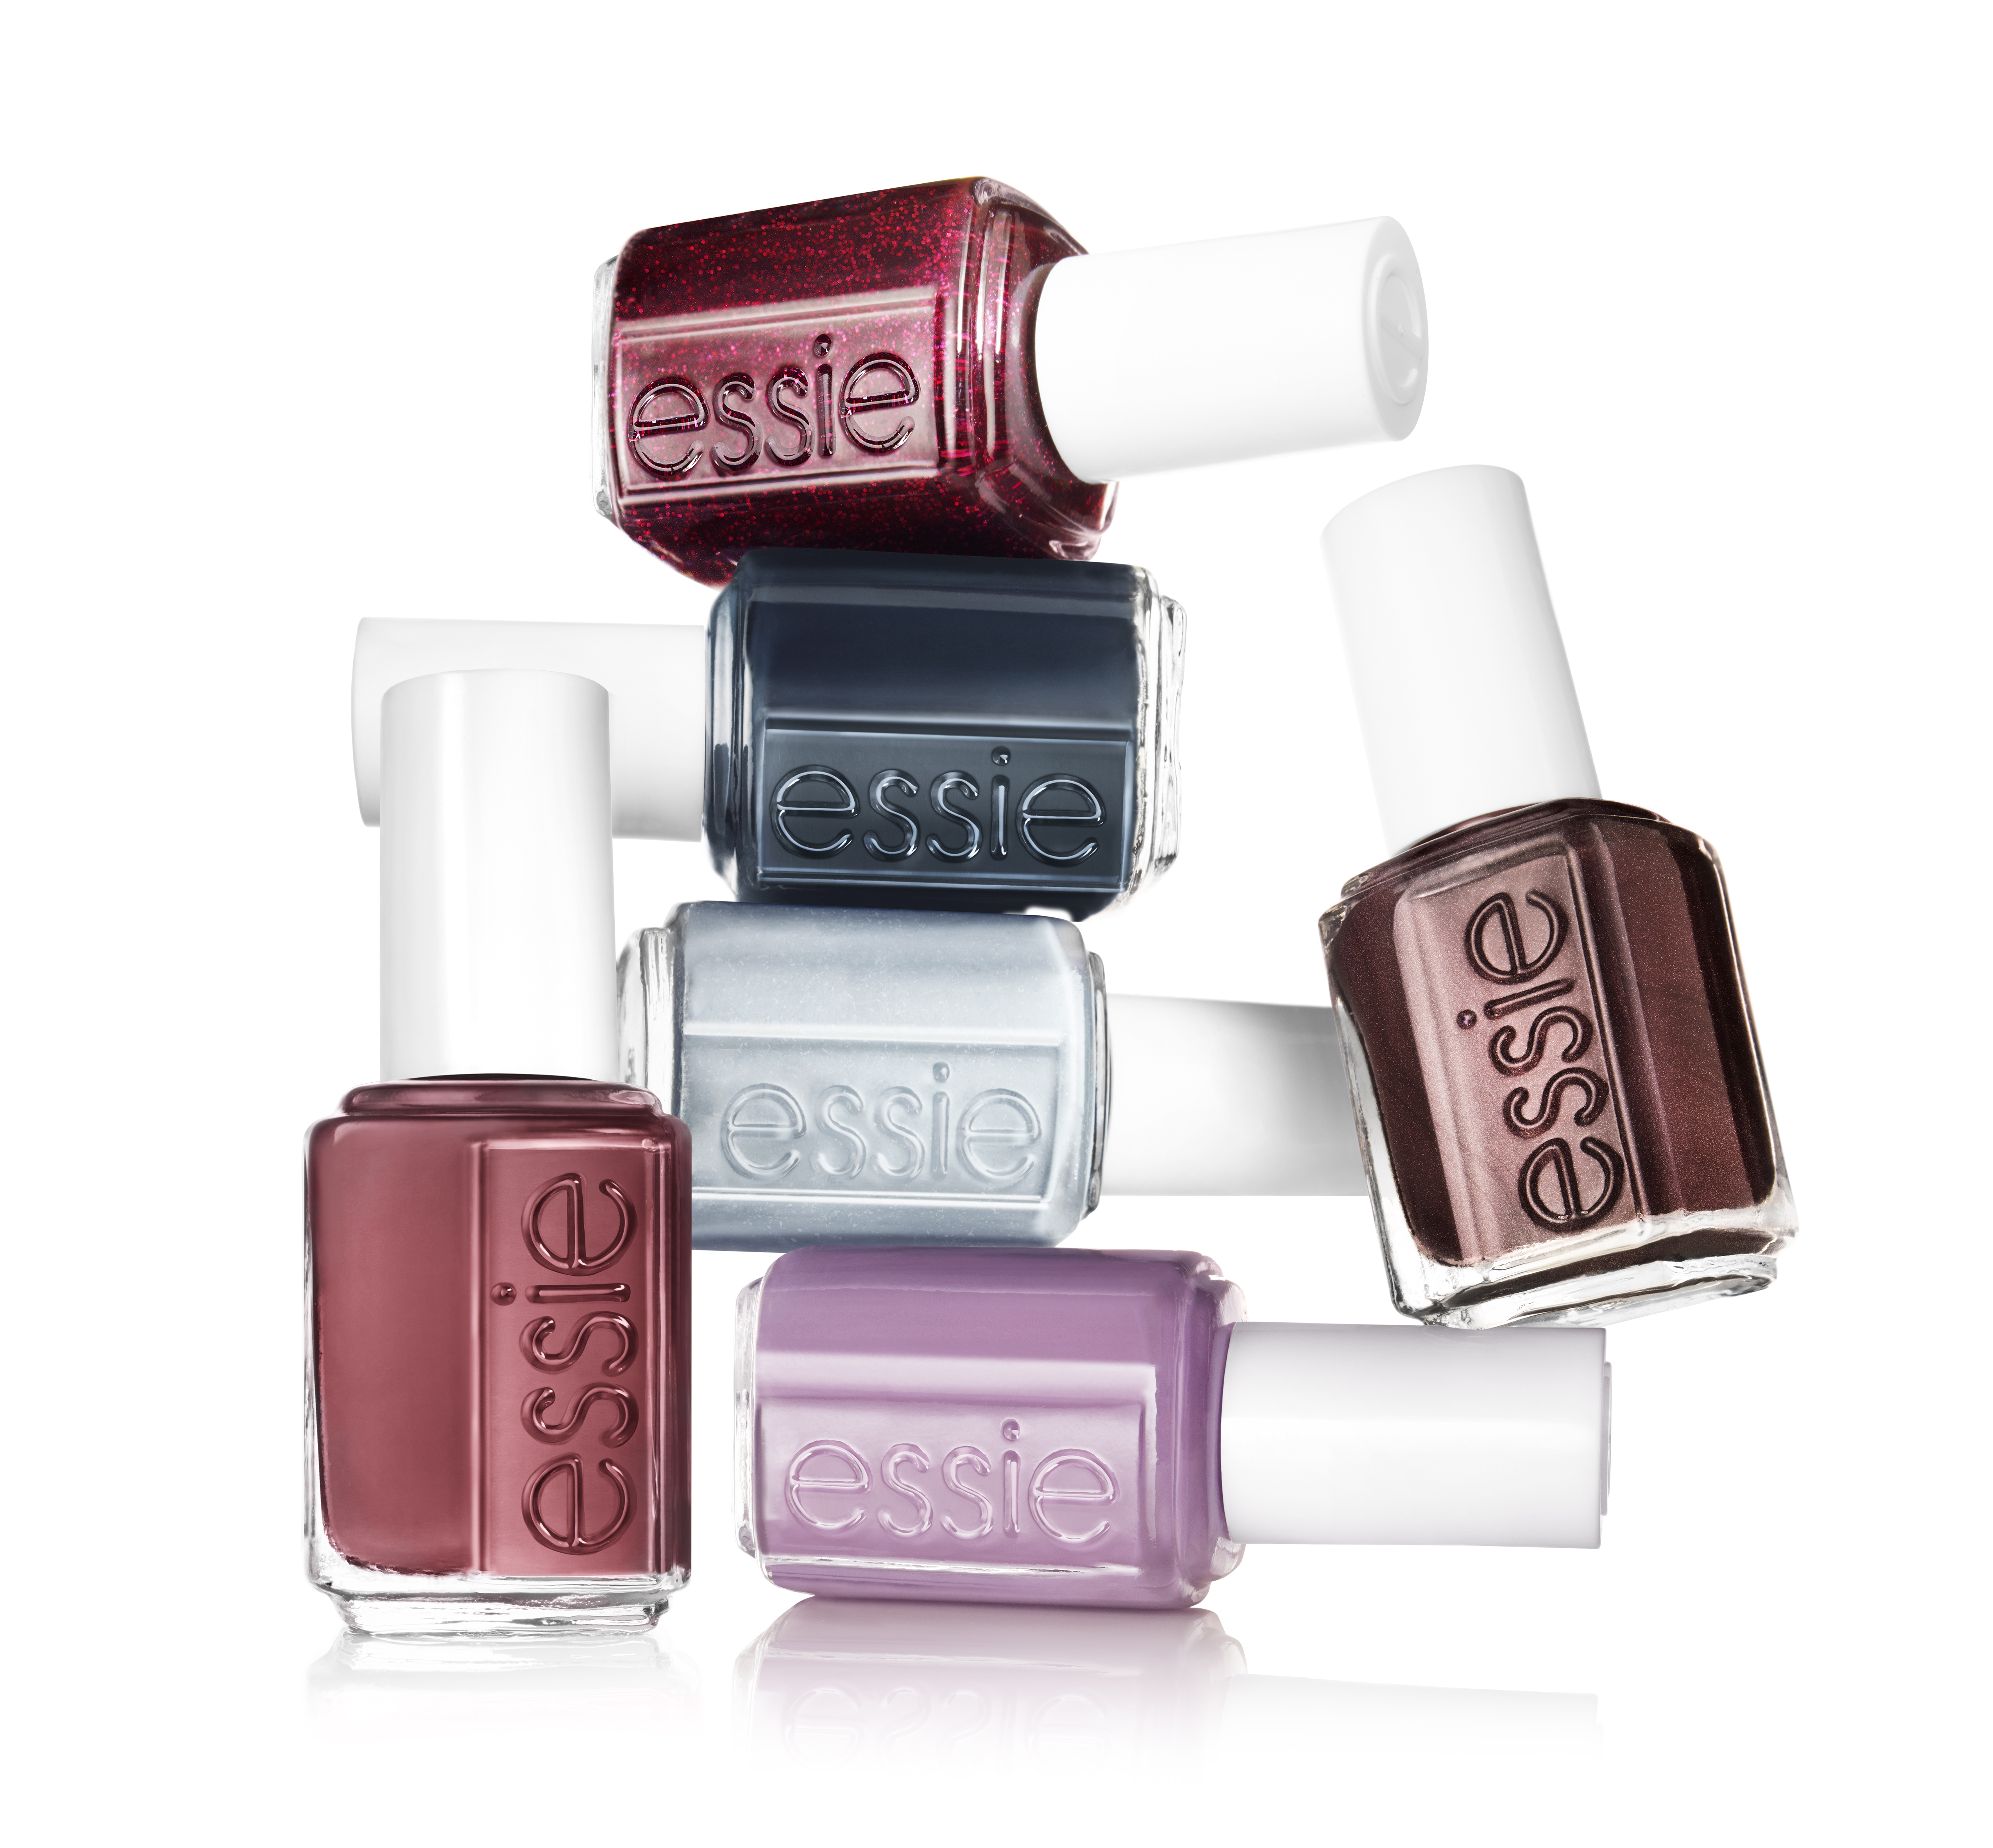 Essie's Winter 2013 Nail Polish Collection